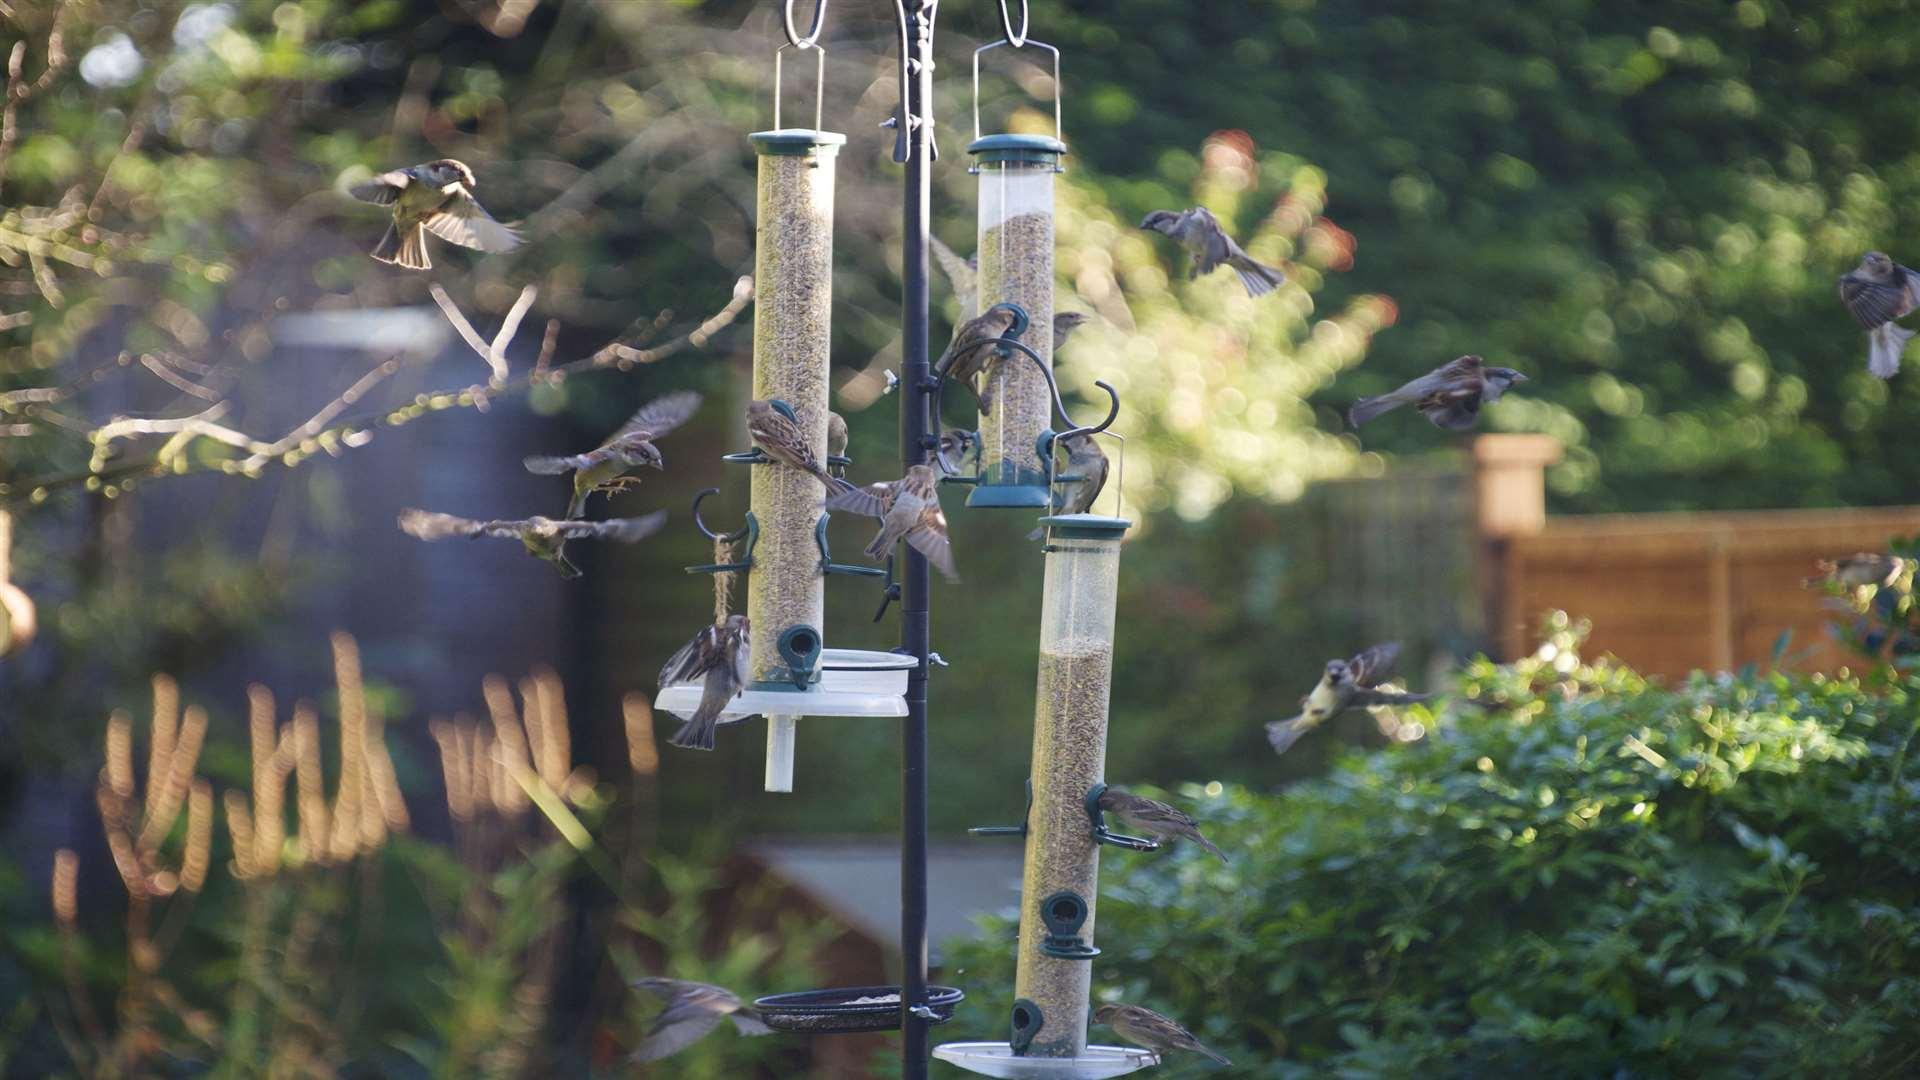 It's time to once again fill up your feeders and register for the Big Garden Birdwatch